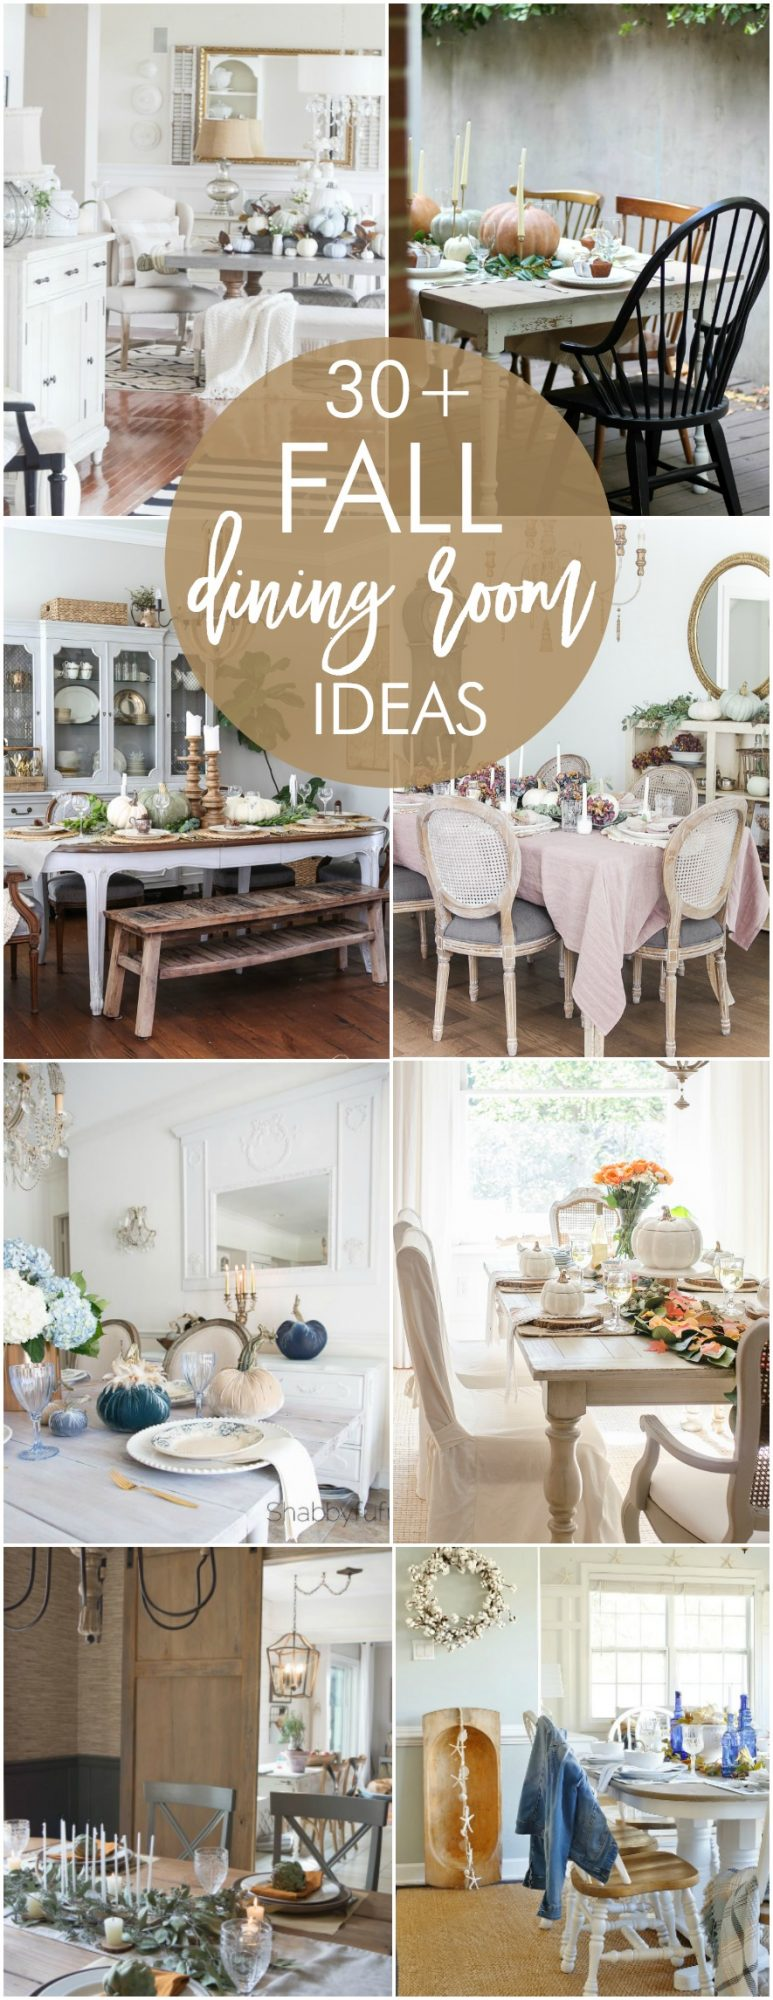 Fall Dining Room Ideas Autumn Decorating Dining Room